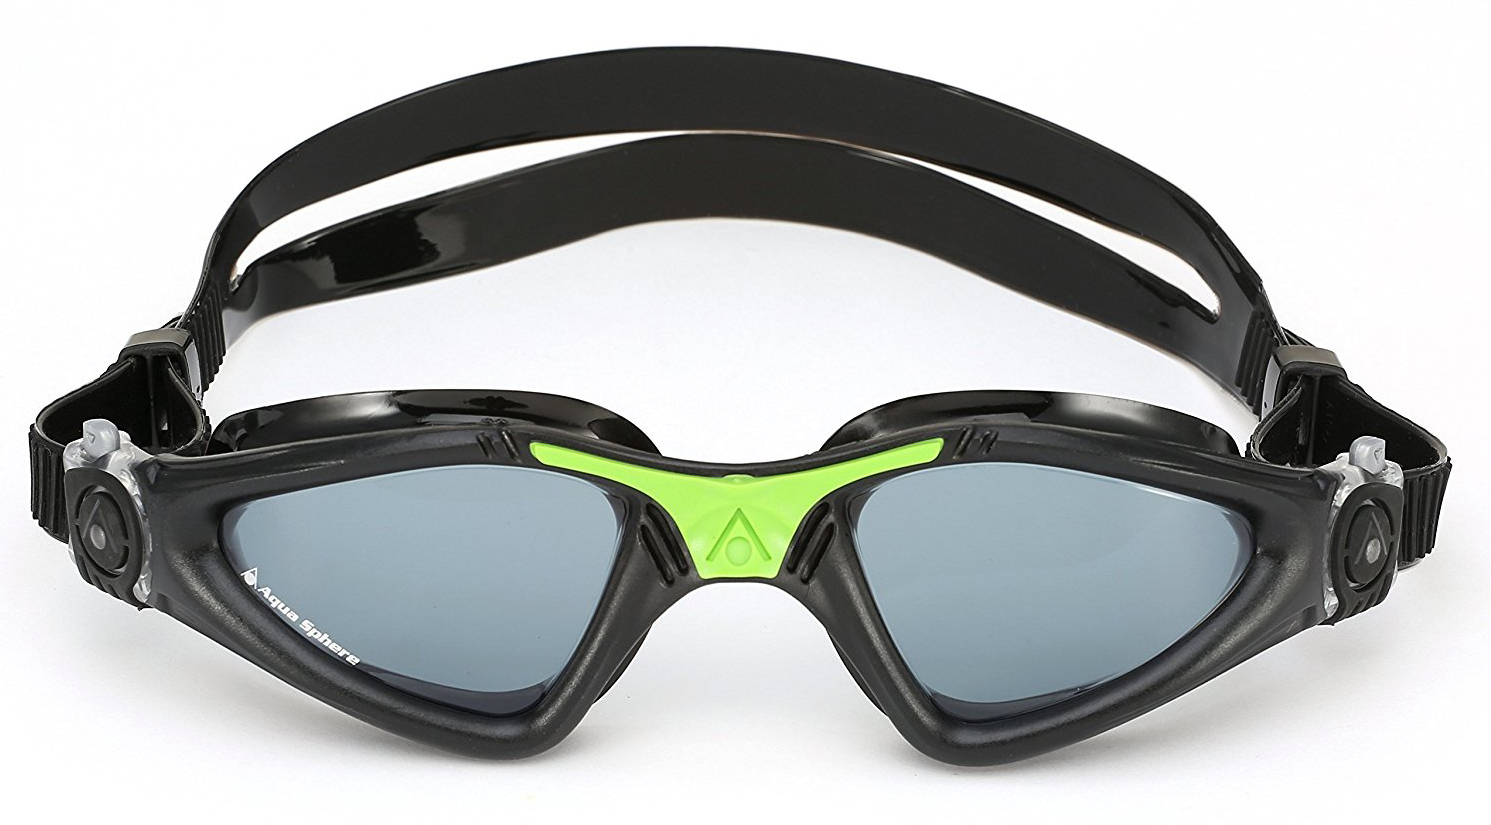 683a18f0cde In-depth review of the 10 best EXPERT recommended swim goggles - the ...